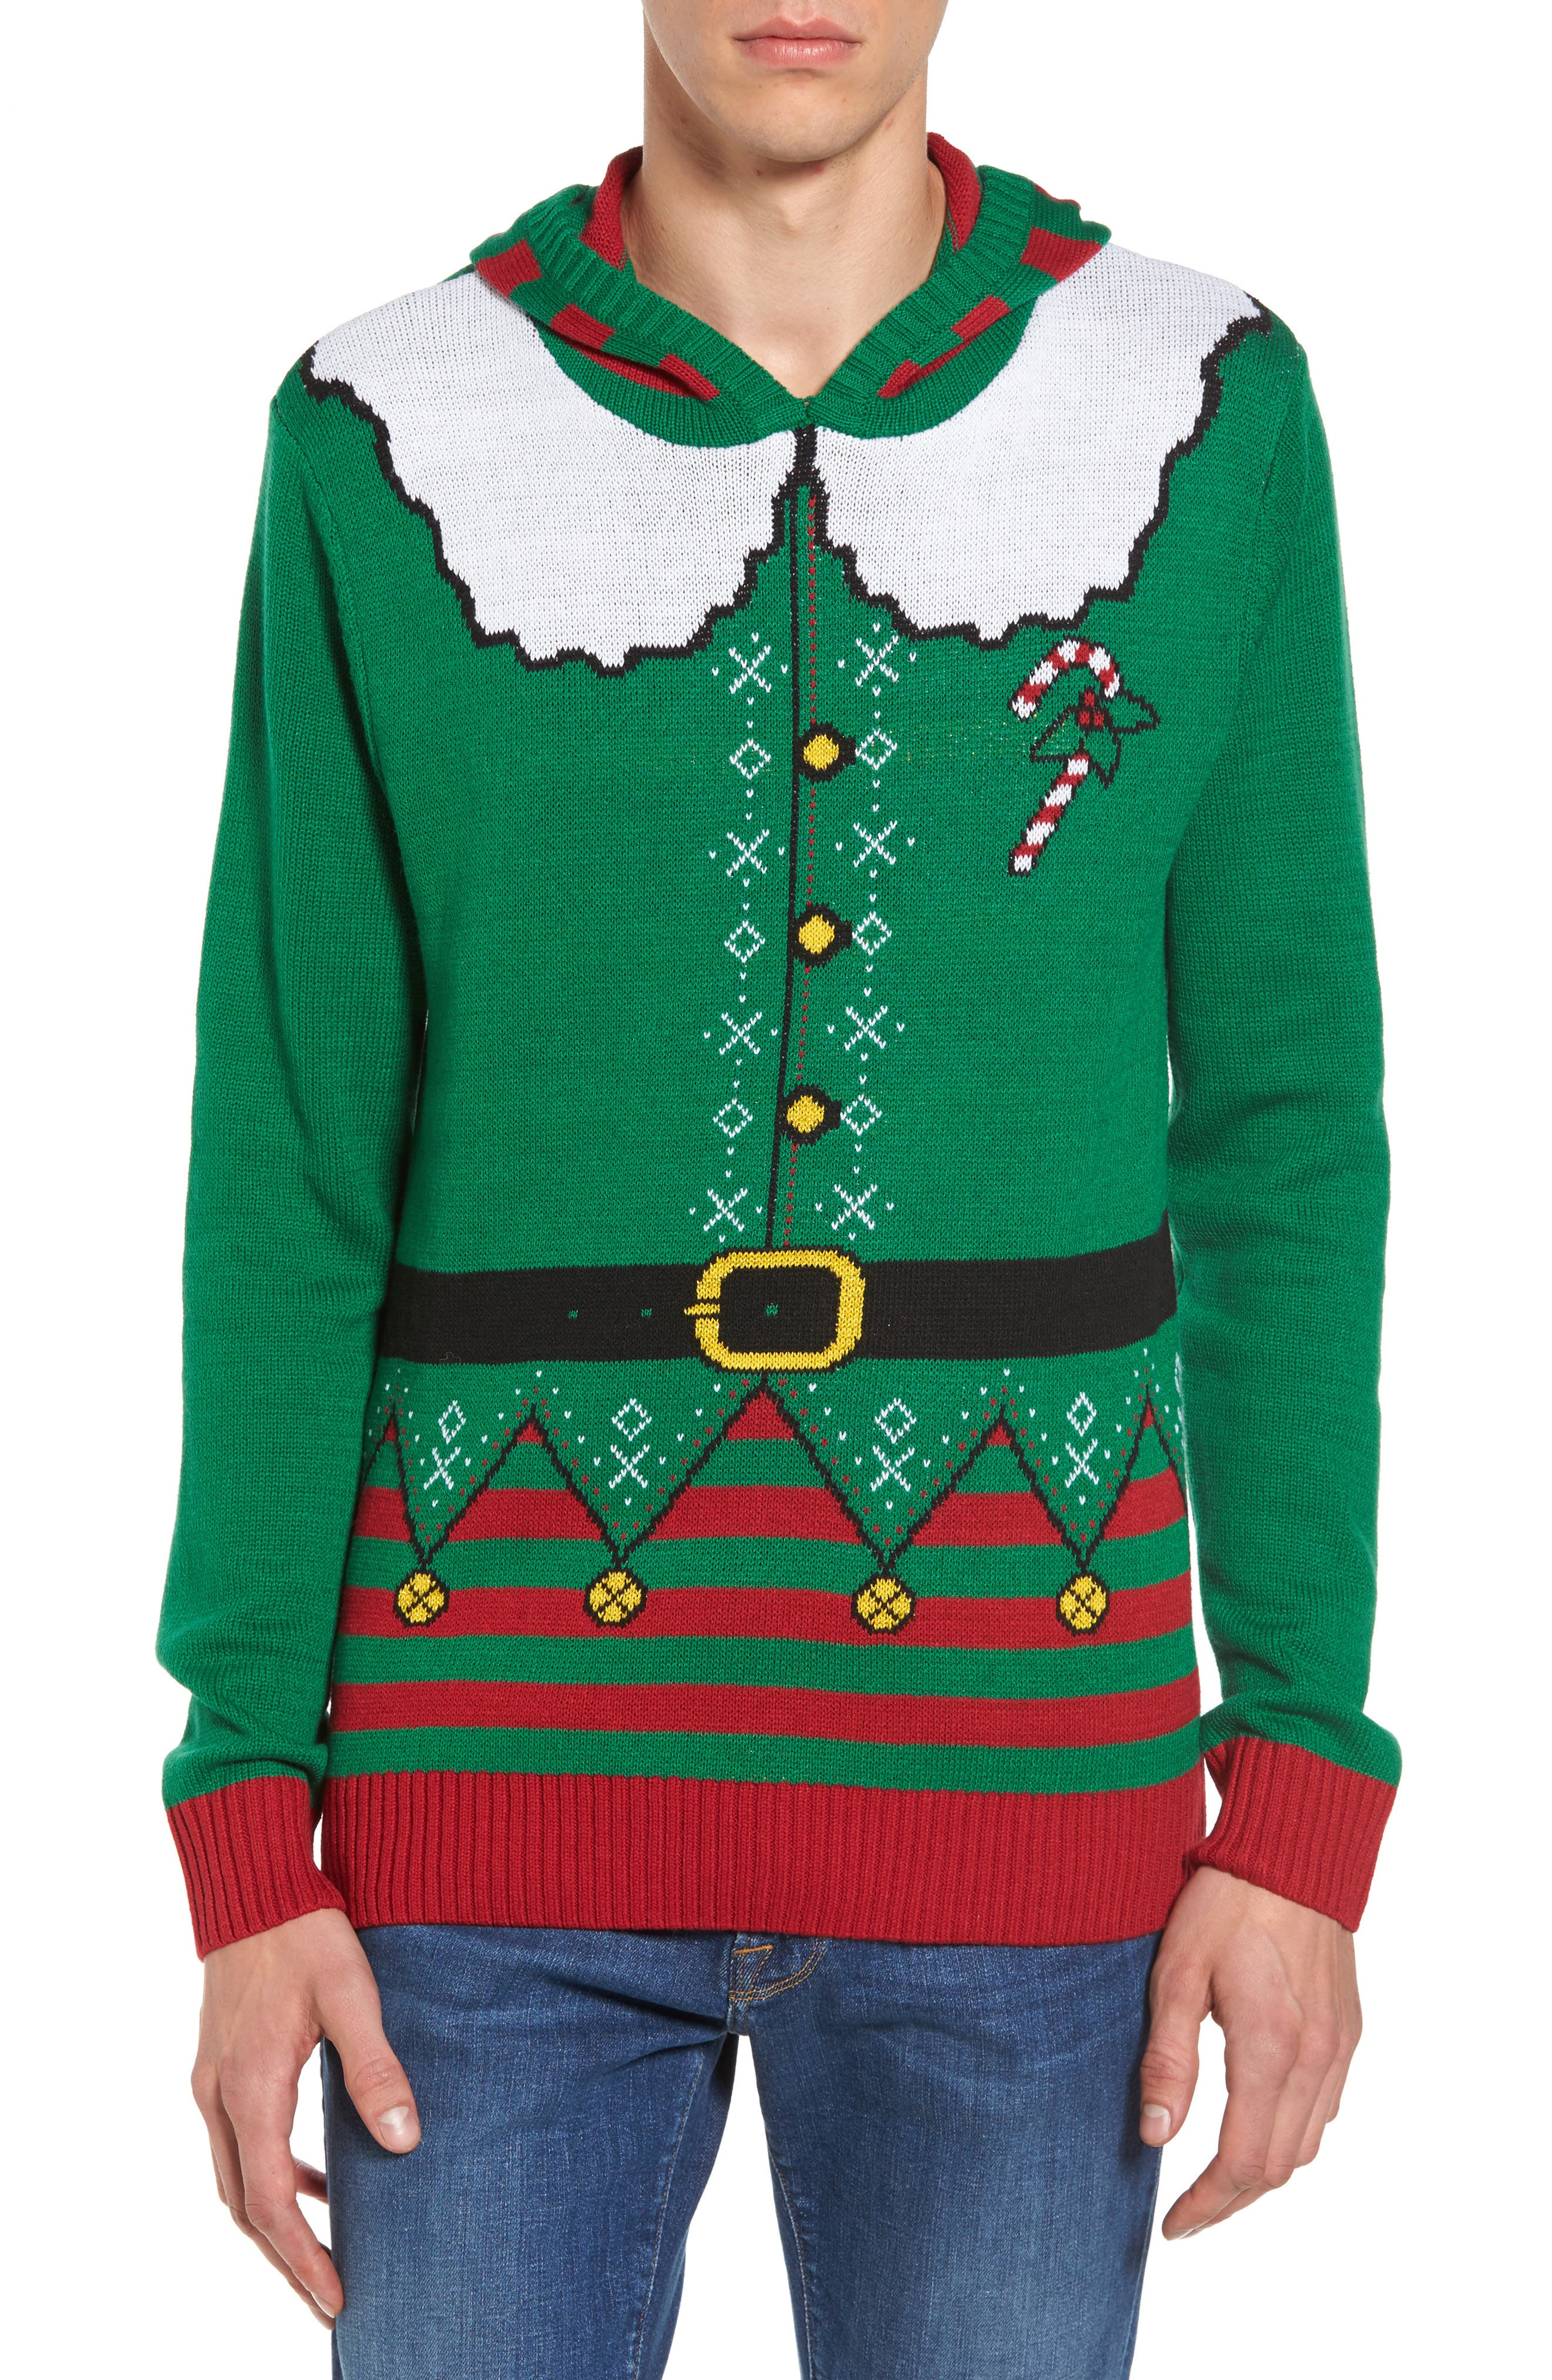 Alternate Image 1 Selected - The Rail Elf Hooded Sweater